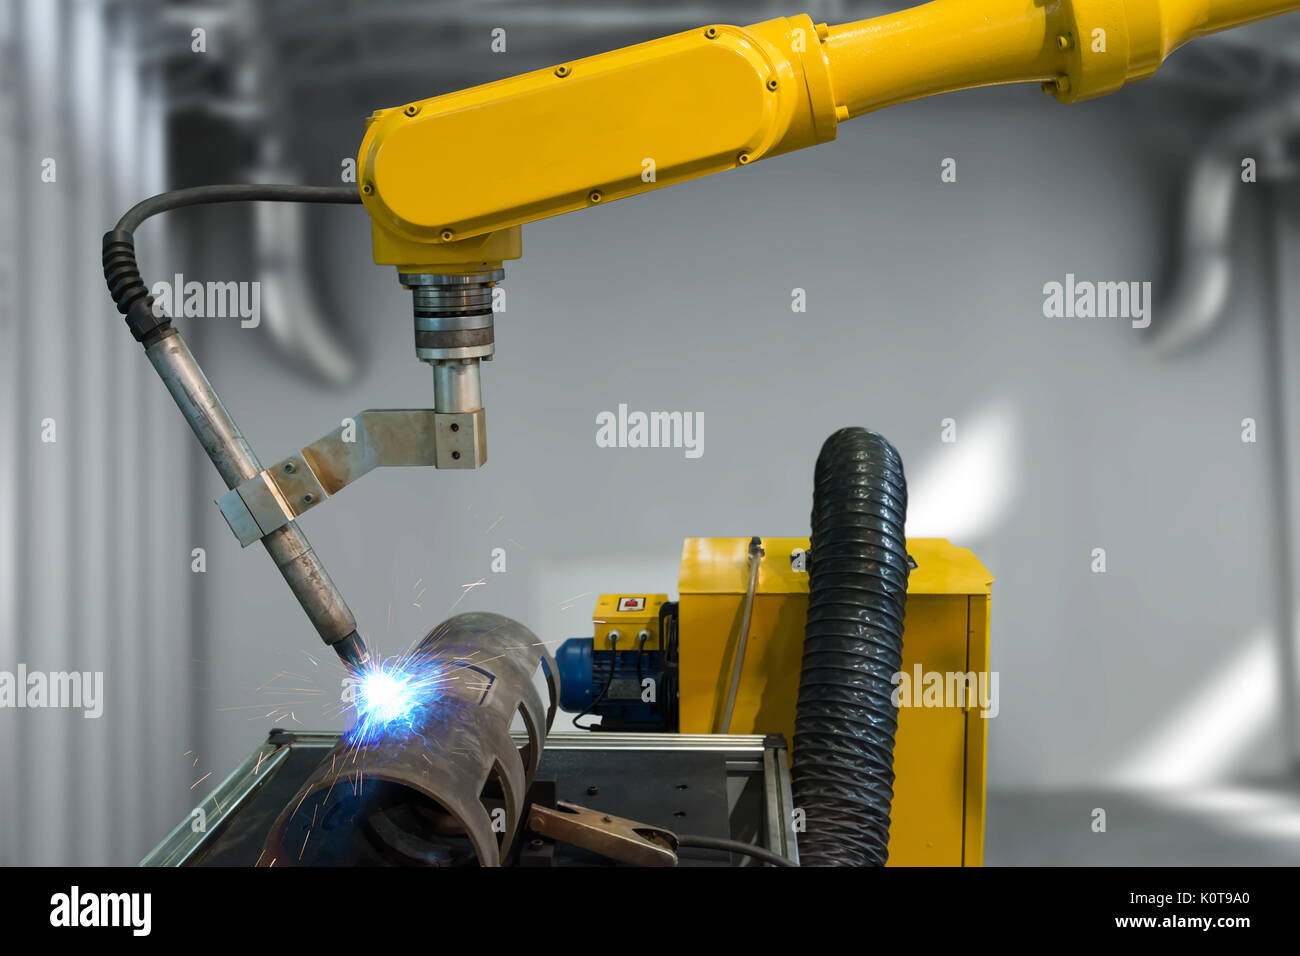 Industry 4.0 technology concept. Automate wireless welding Machine Robot arm in smart factory. - Stock Image